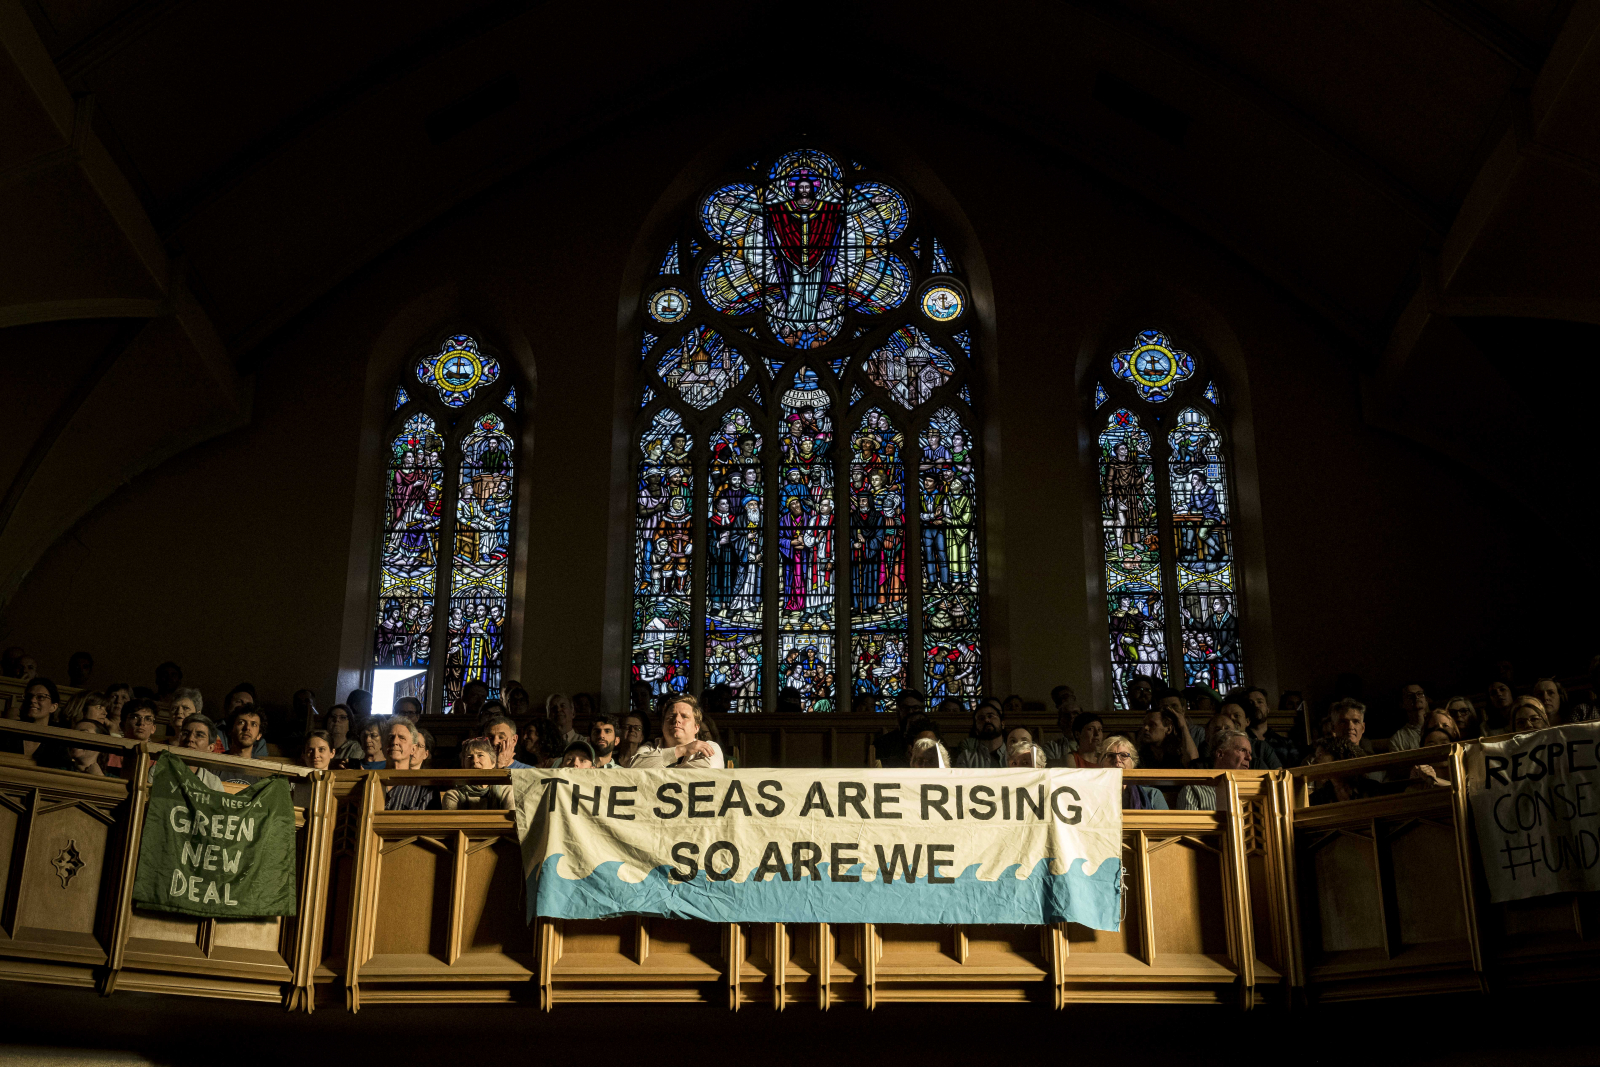 People who attended a town hall on climate change in Toronto dropped banners expressing their concern over rising sea levels. Photo by Chris Katsarov.